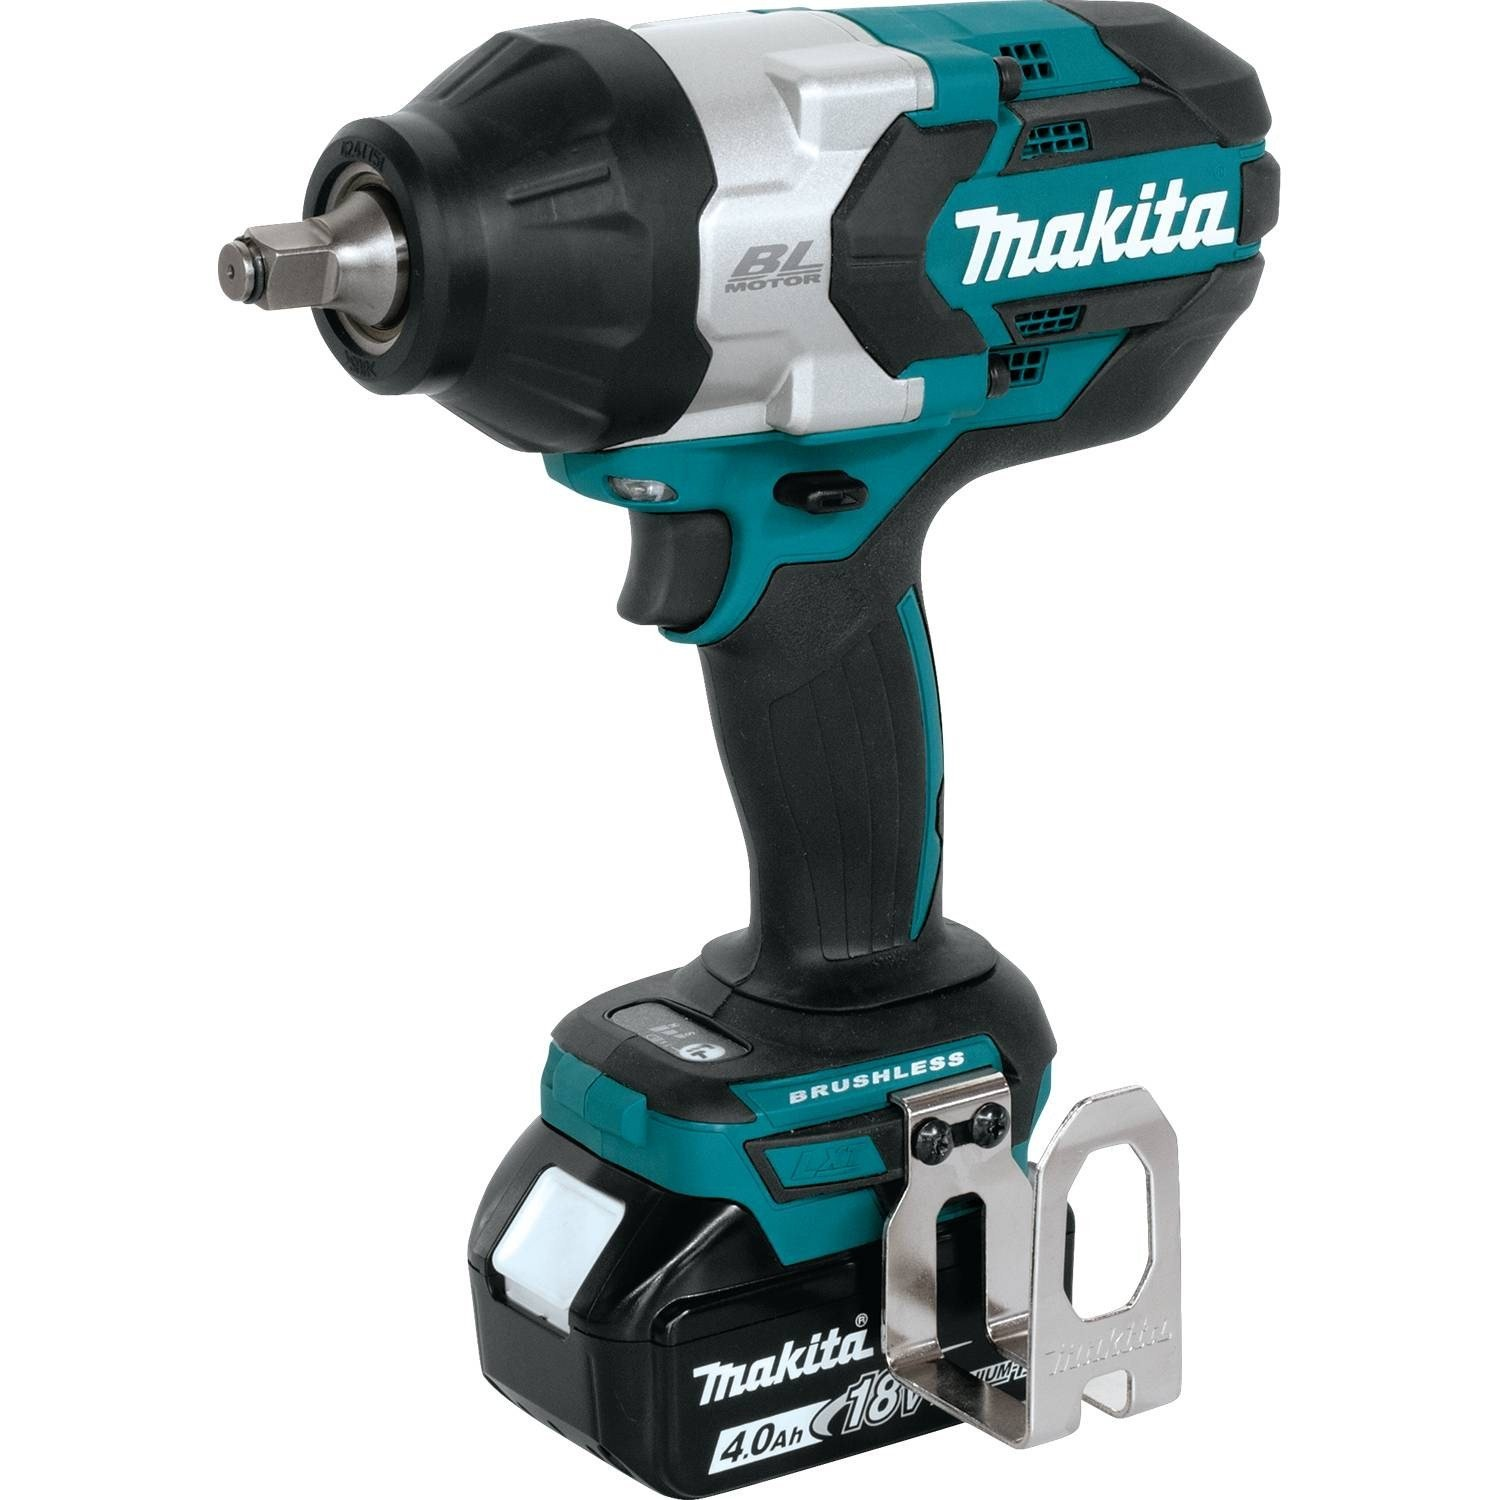 makita 18v 1/2 inch cordless impact wrench review